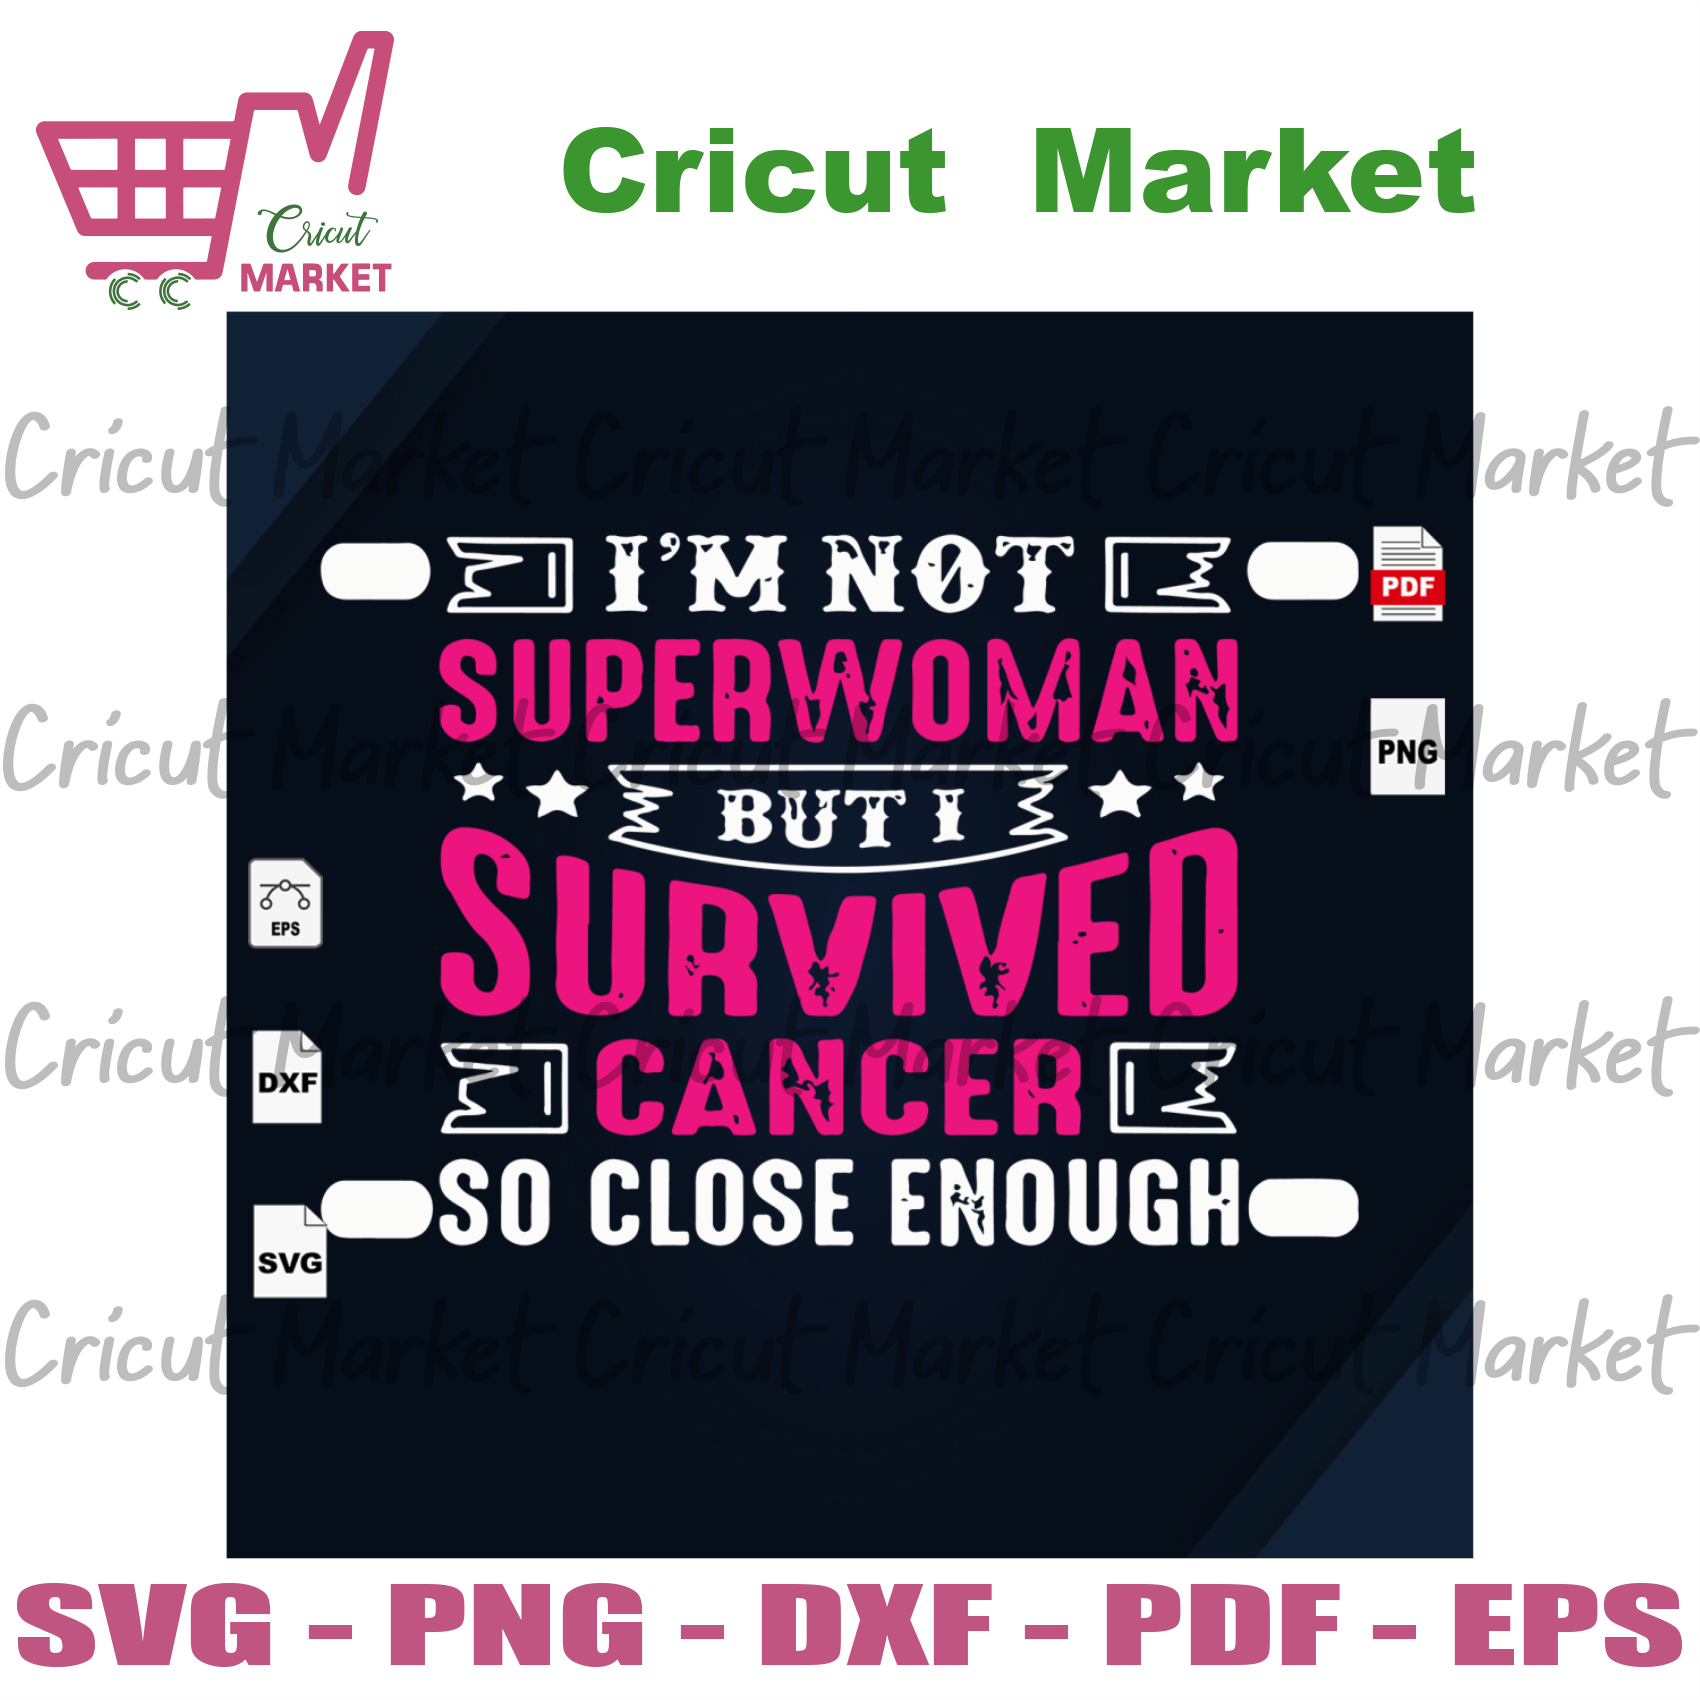 I'm Not Superwoman, I Survived Cancer So Close Enough, Breast Cancer Svg, Cancer Awareness, Cancer Ribbon Svg, Breast Cancer Ribbon, Breast Cancer Anniversary, Breast Cancer Ribbon Print, R